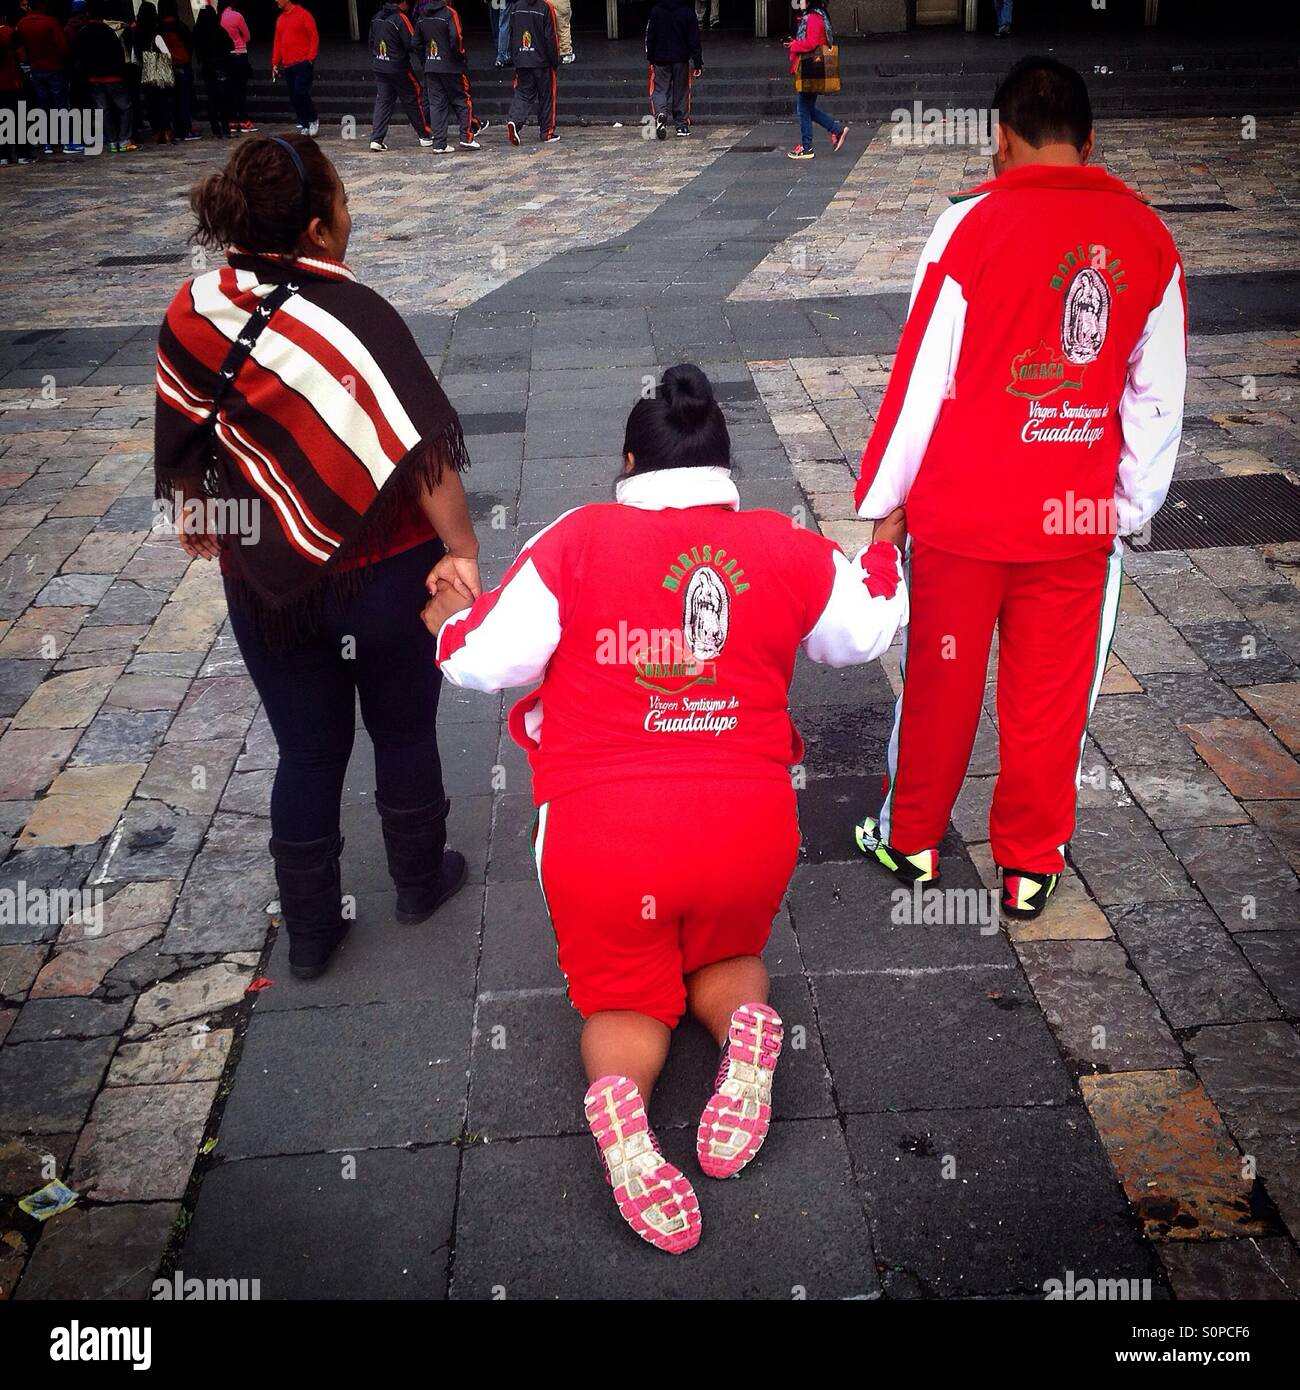 Pilgrims help a woman walking in her knees during the pilgrimage to the Basilica of Our Lady of Guadalupe, Mexico - Stock Image